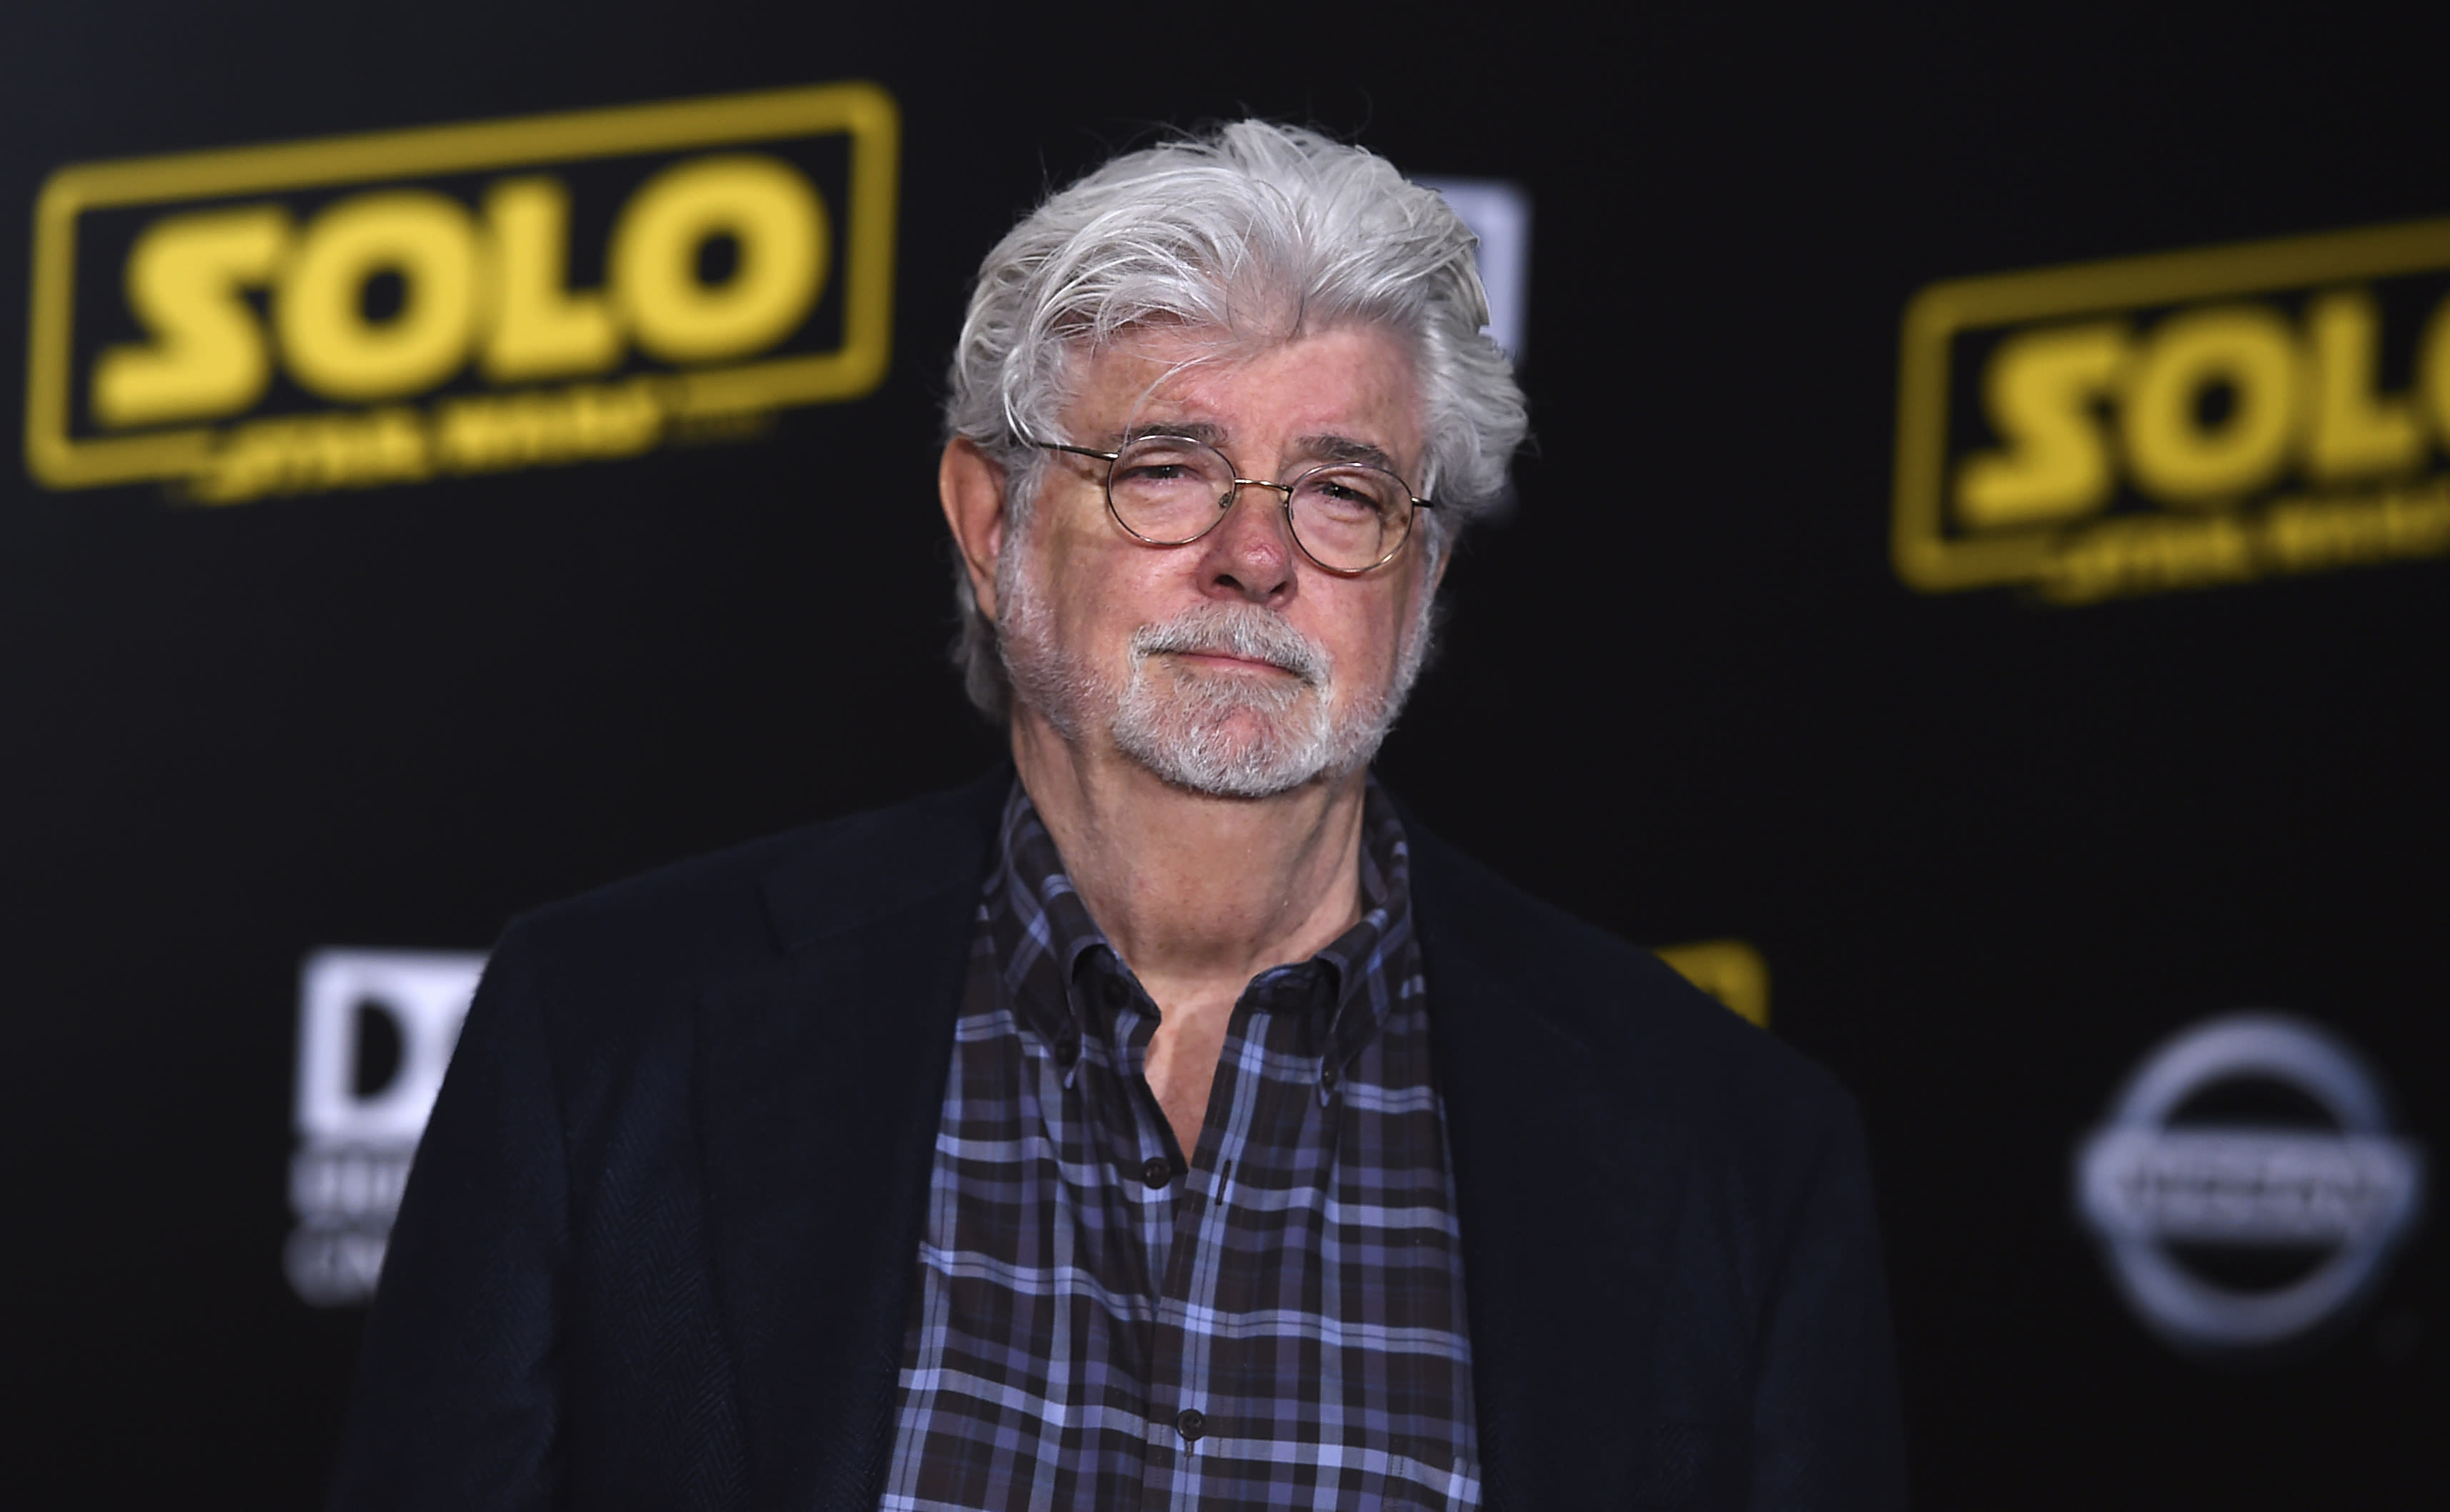 George Lucas met Baby Yoda on the set of 'The Mandalorian'